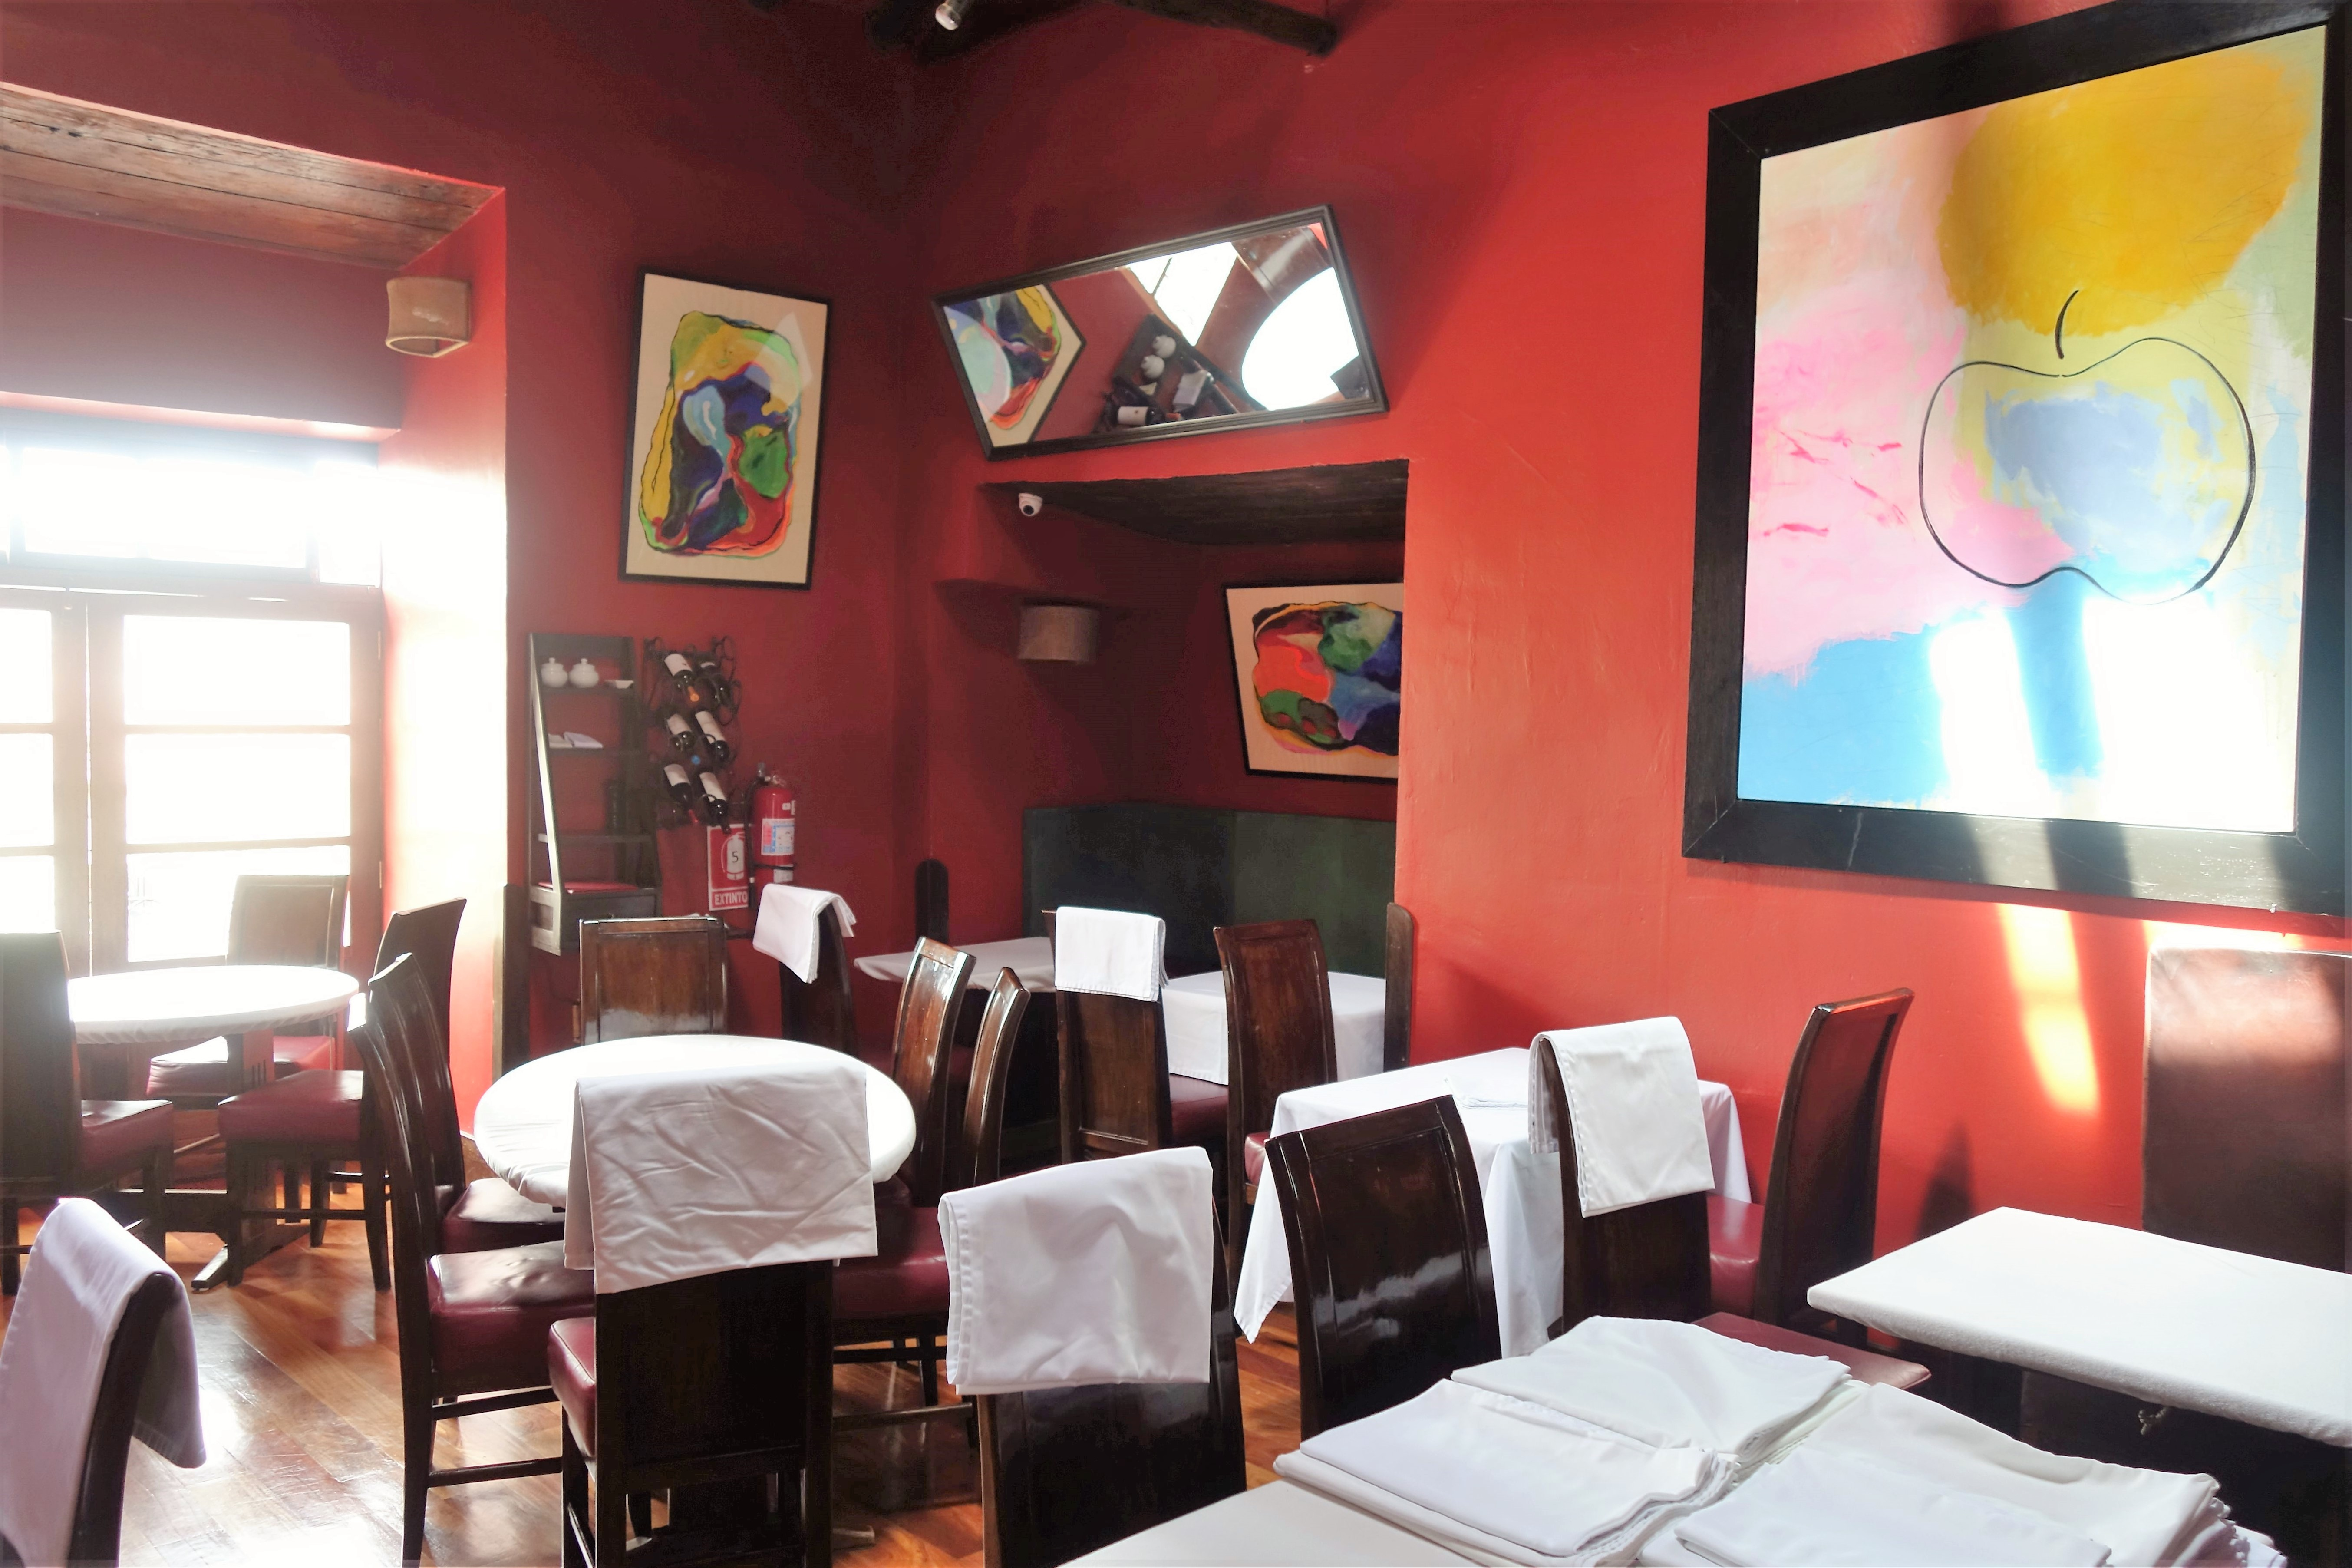 Decoration Chicha Bar Now Open For The Better Part Of Two Decades And Best Known